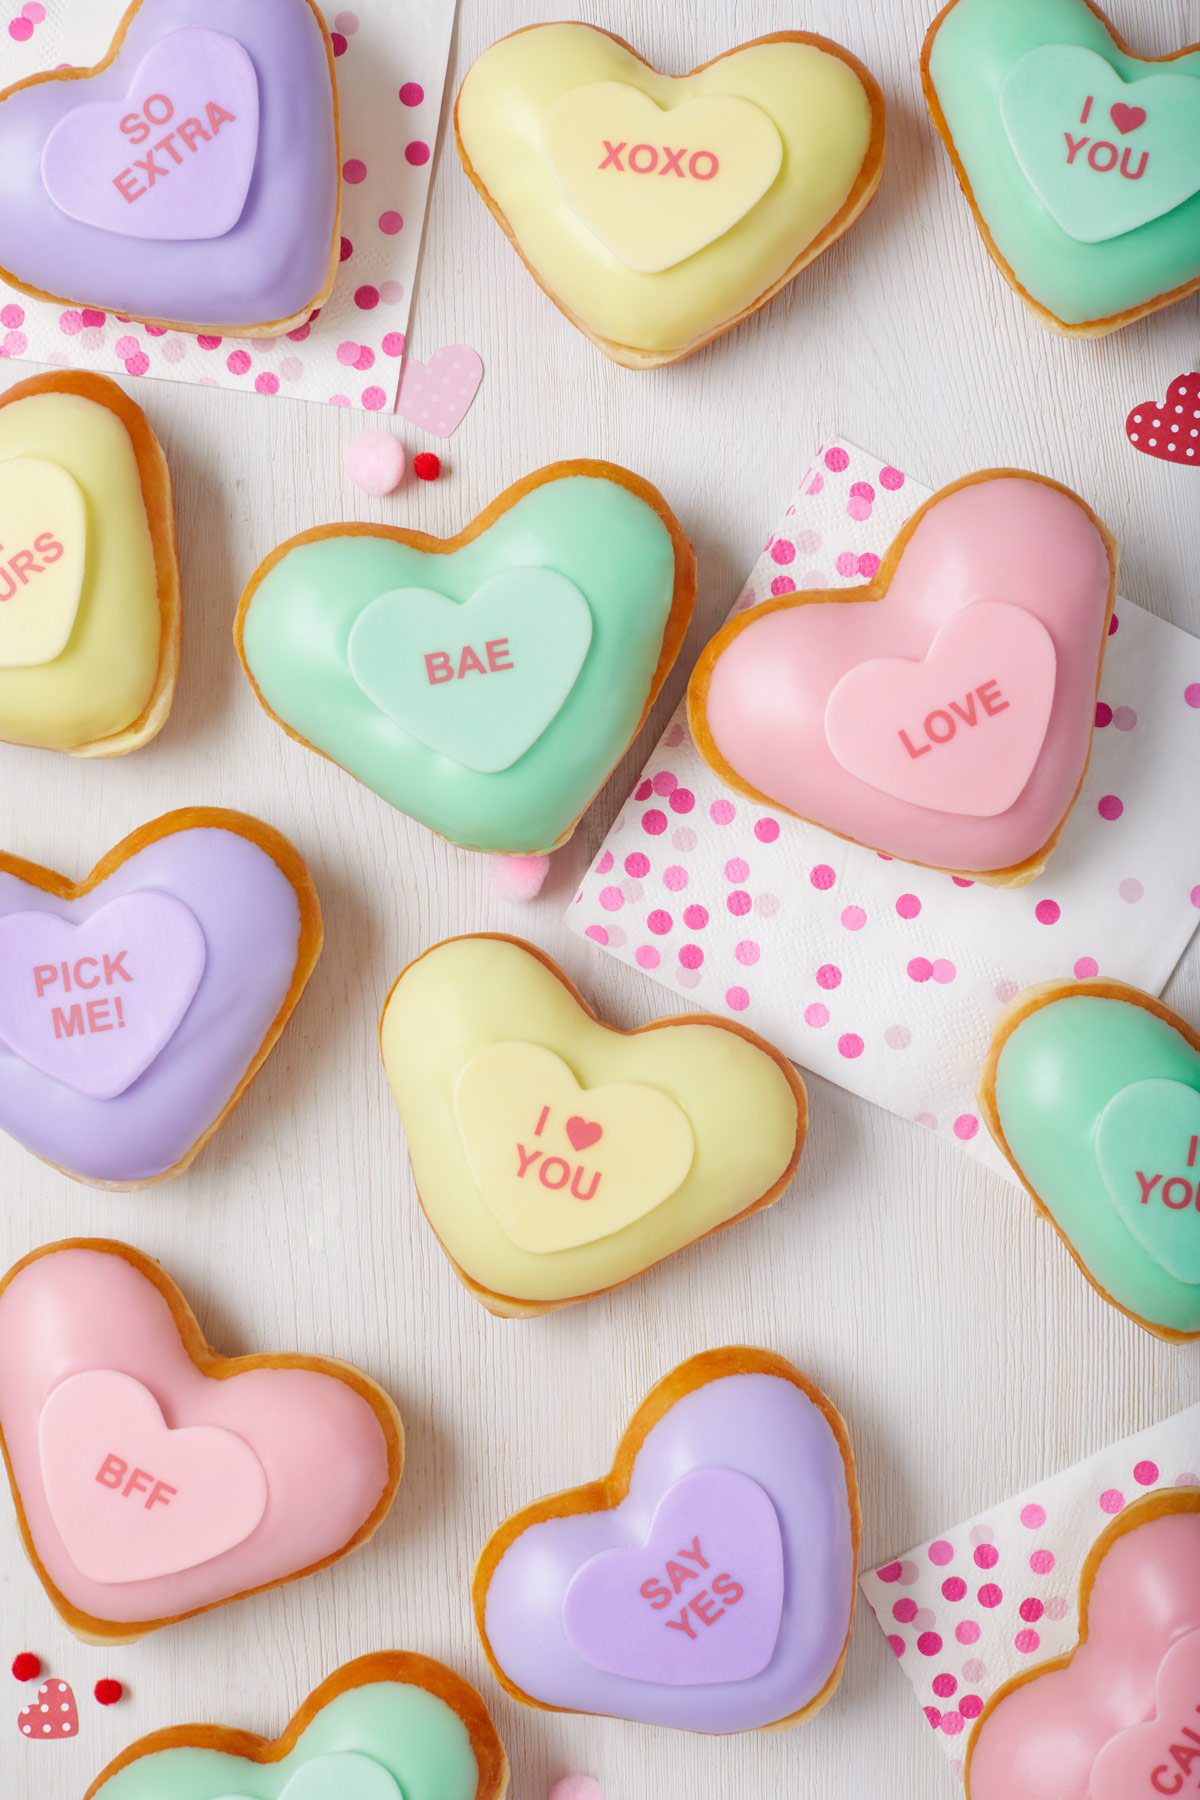 Food product photography of heart-shaped, Valentine's Day themed doughnuts from Krispy Kreme